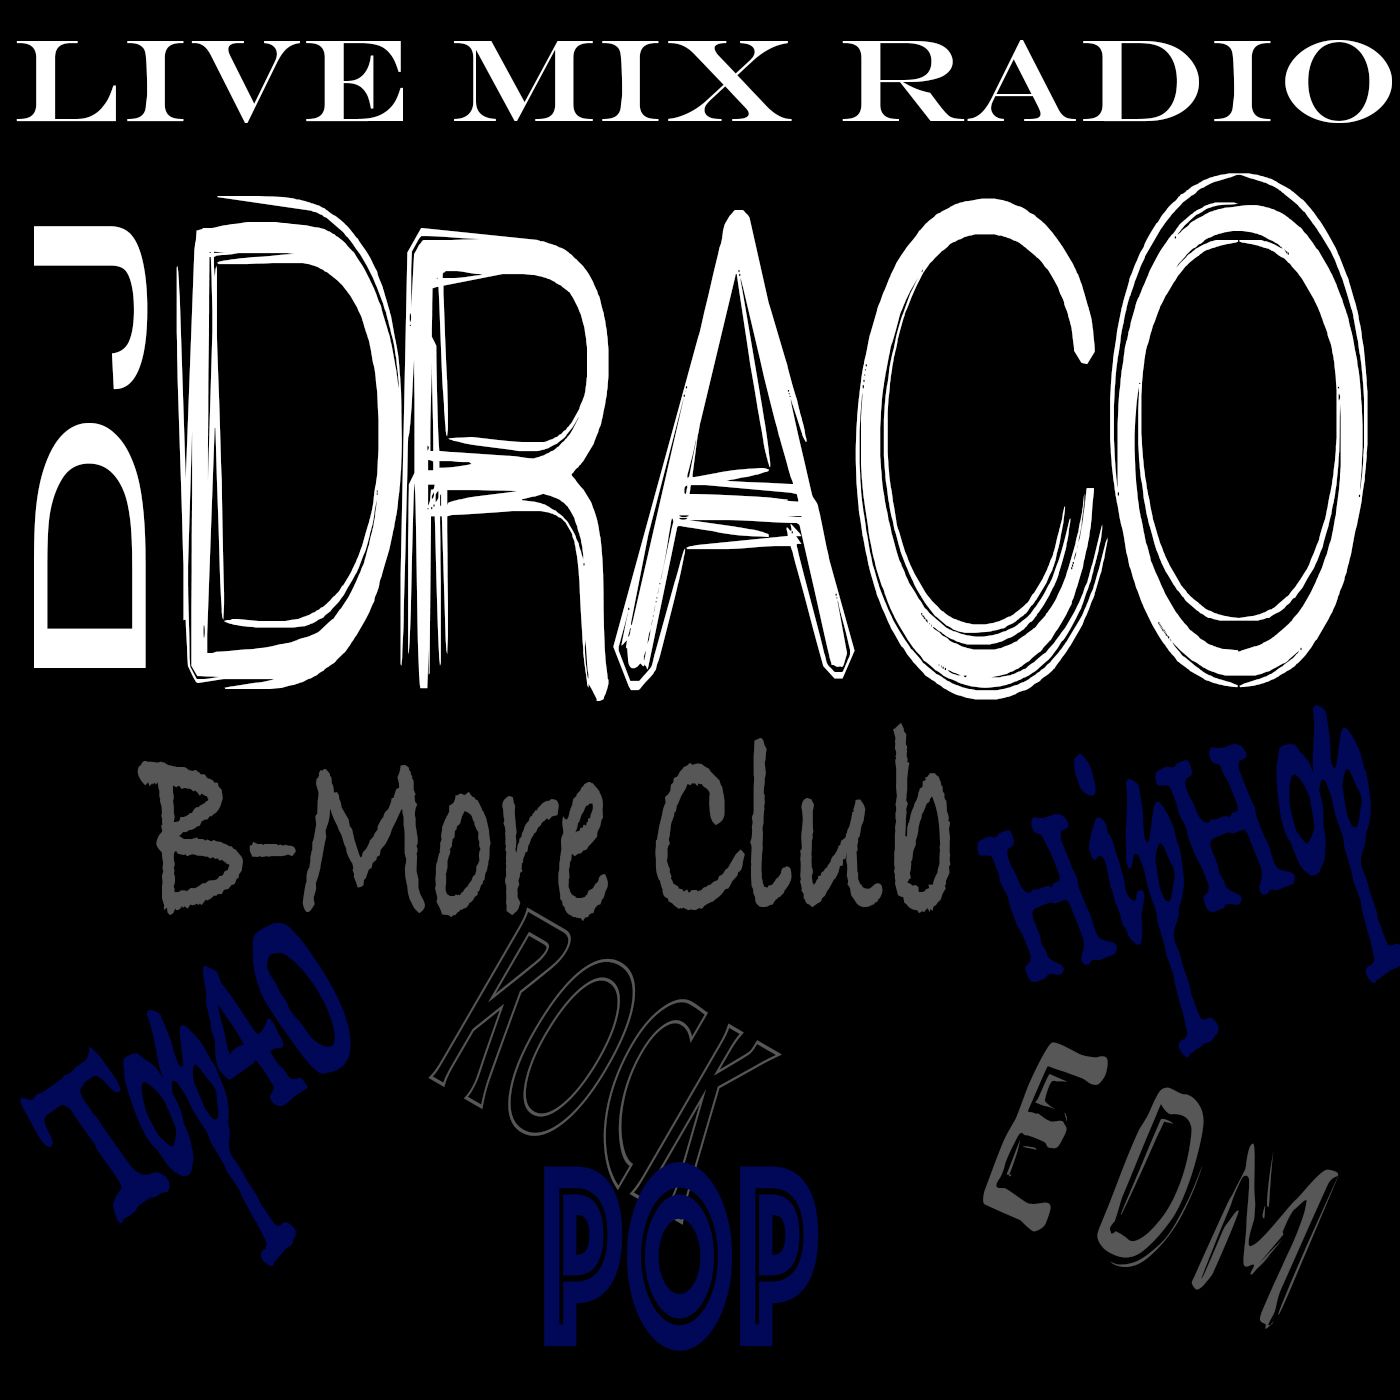 DJ Draco's Mixtapes